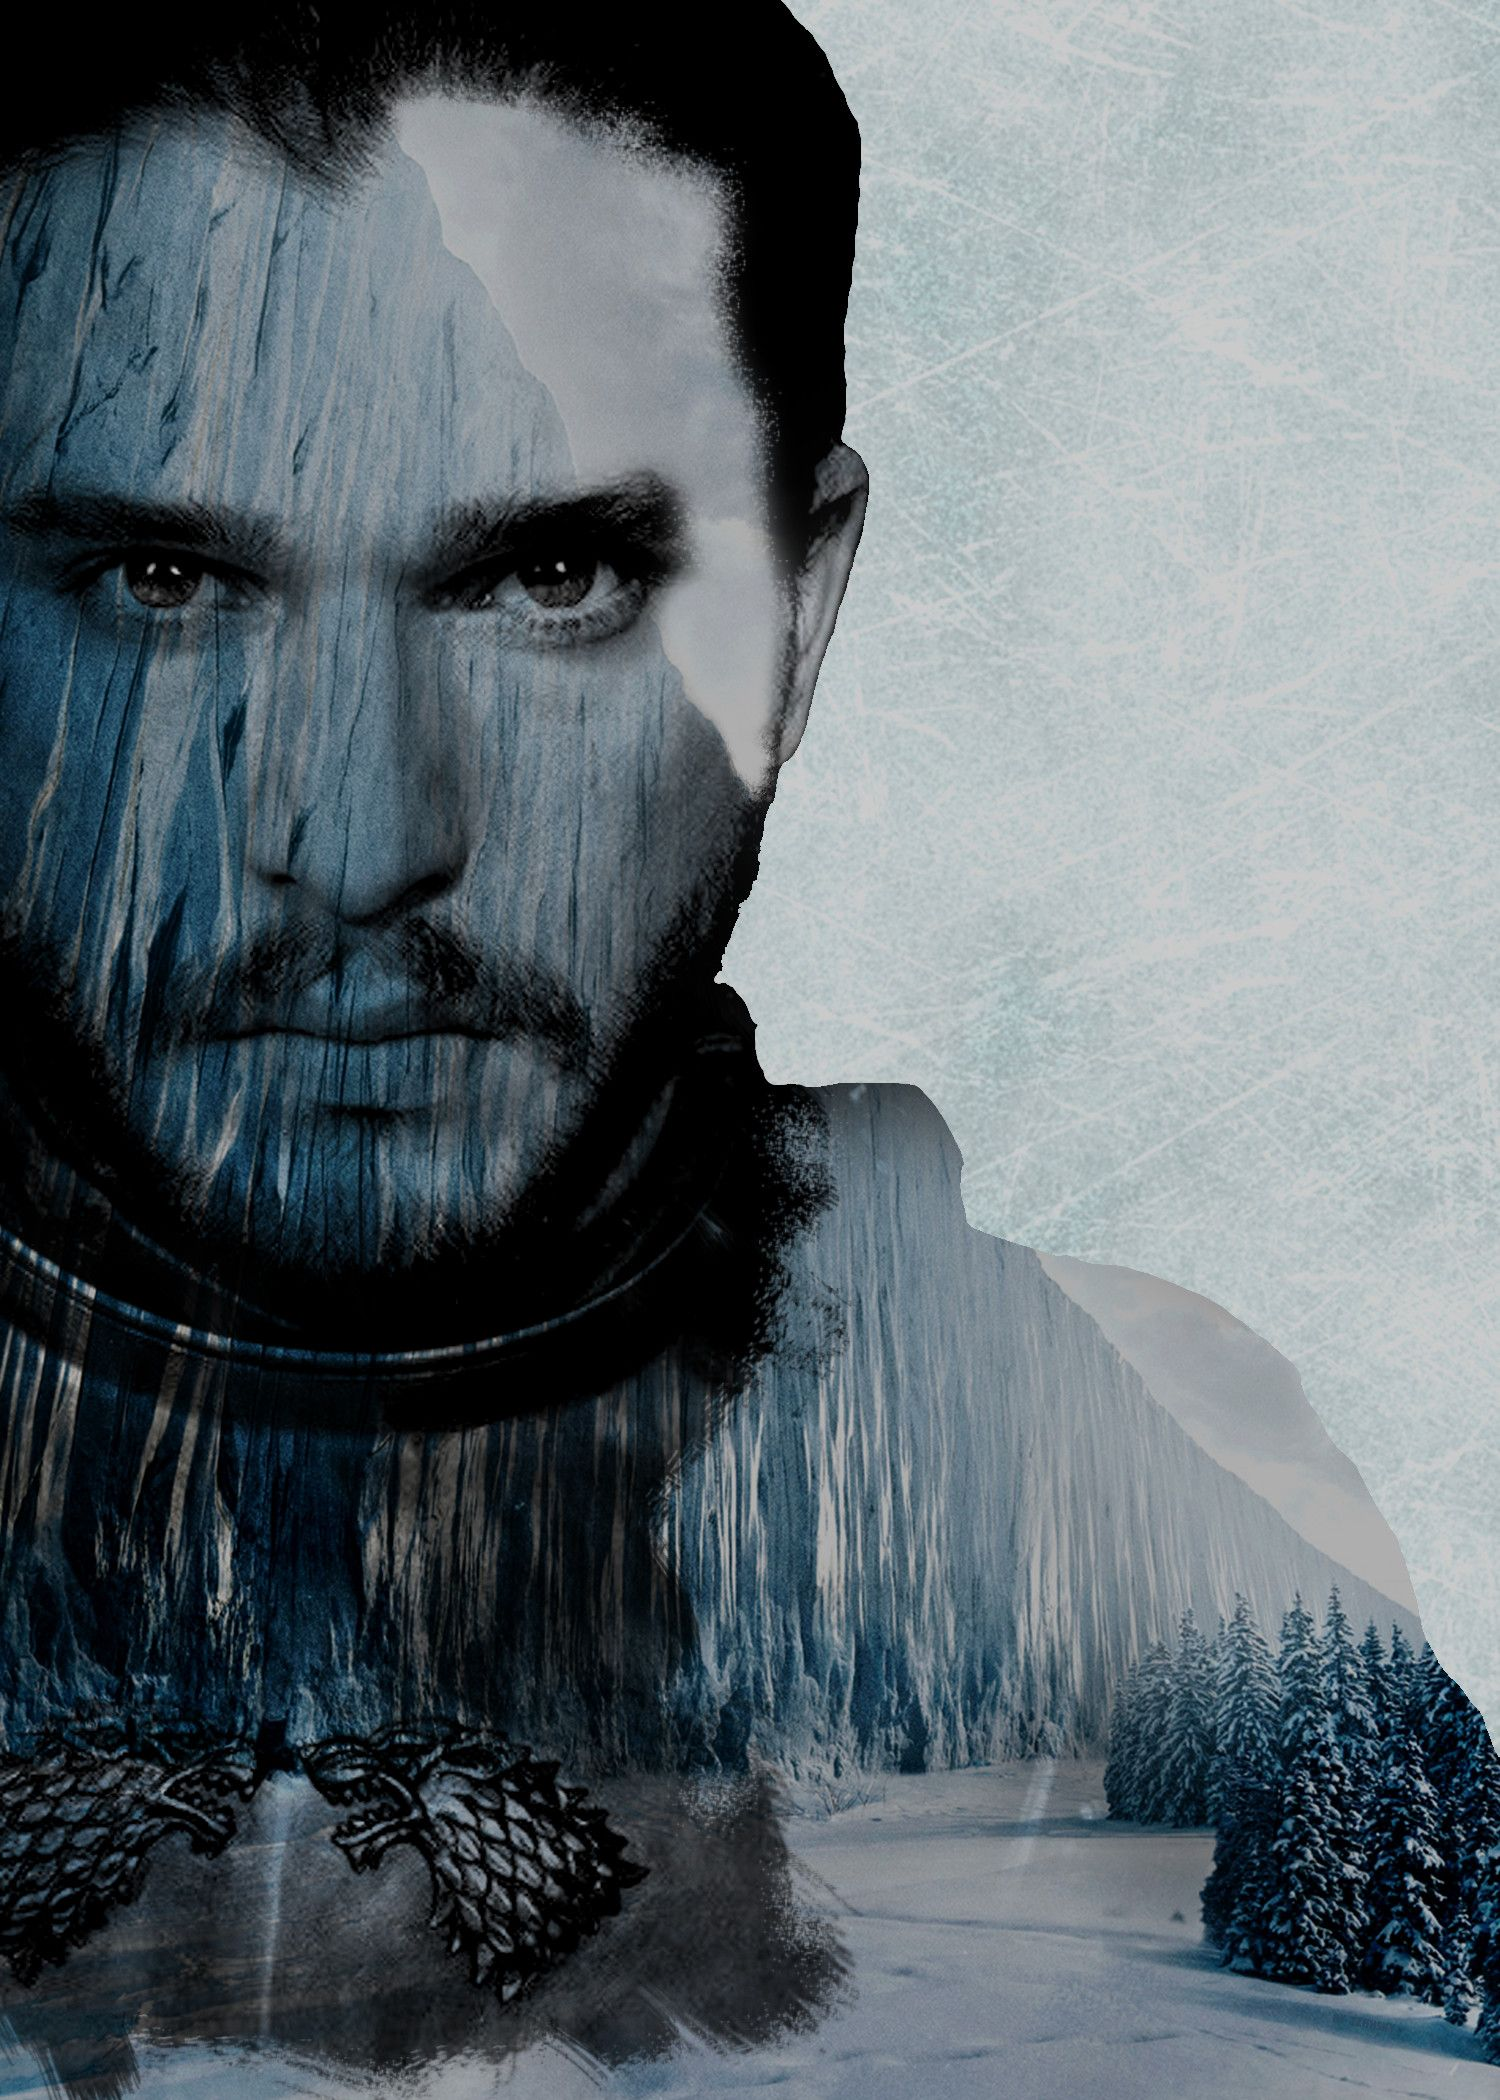 Jon Snow Art Wallpapers - Top Free Jon